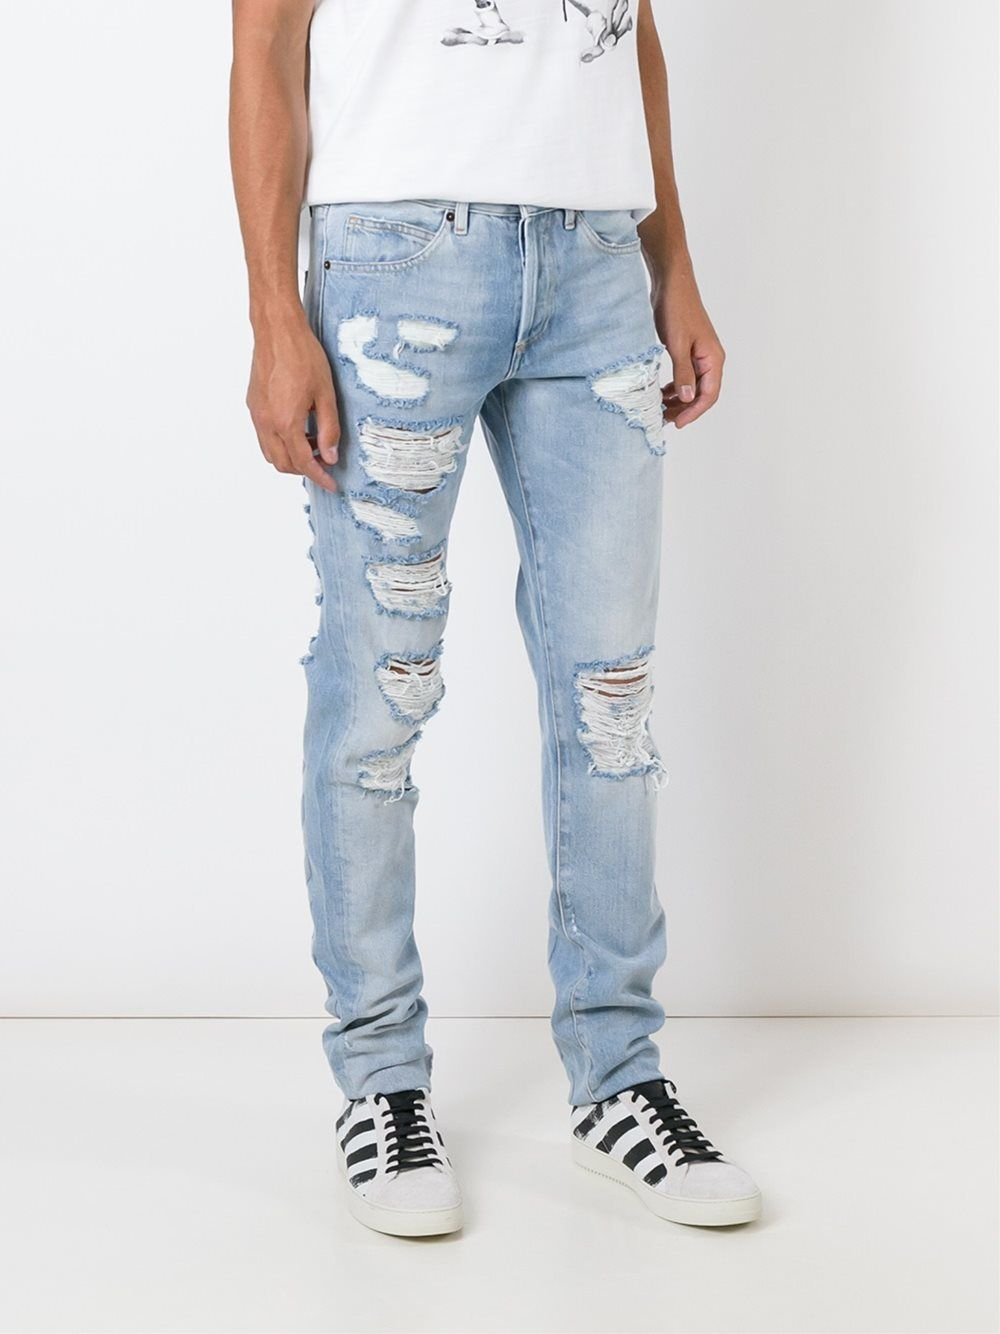 Buy Jeans white for men picture trends